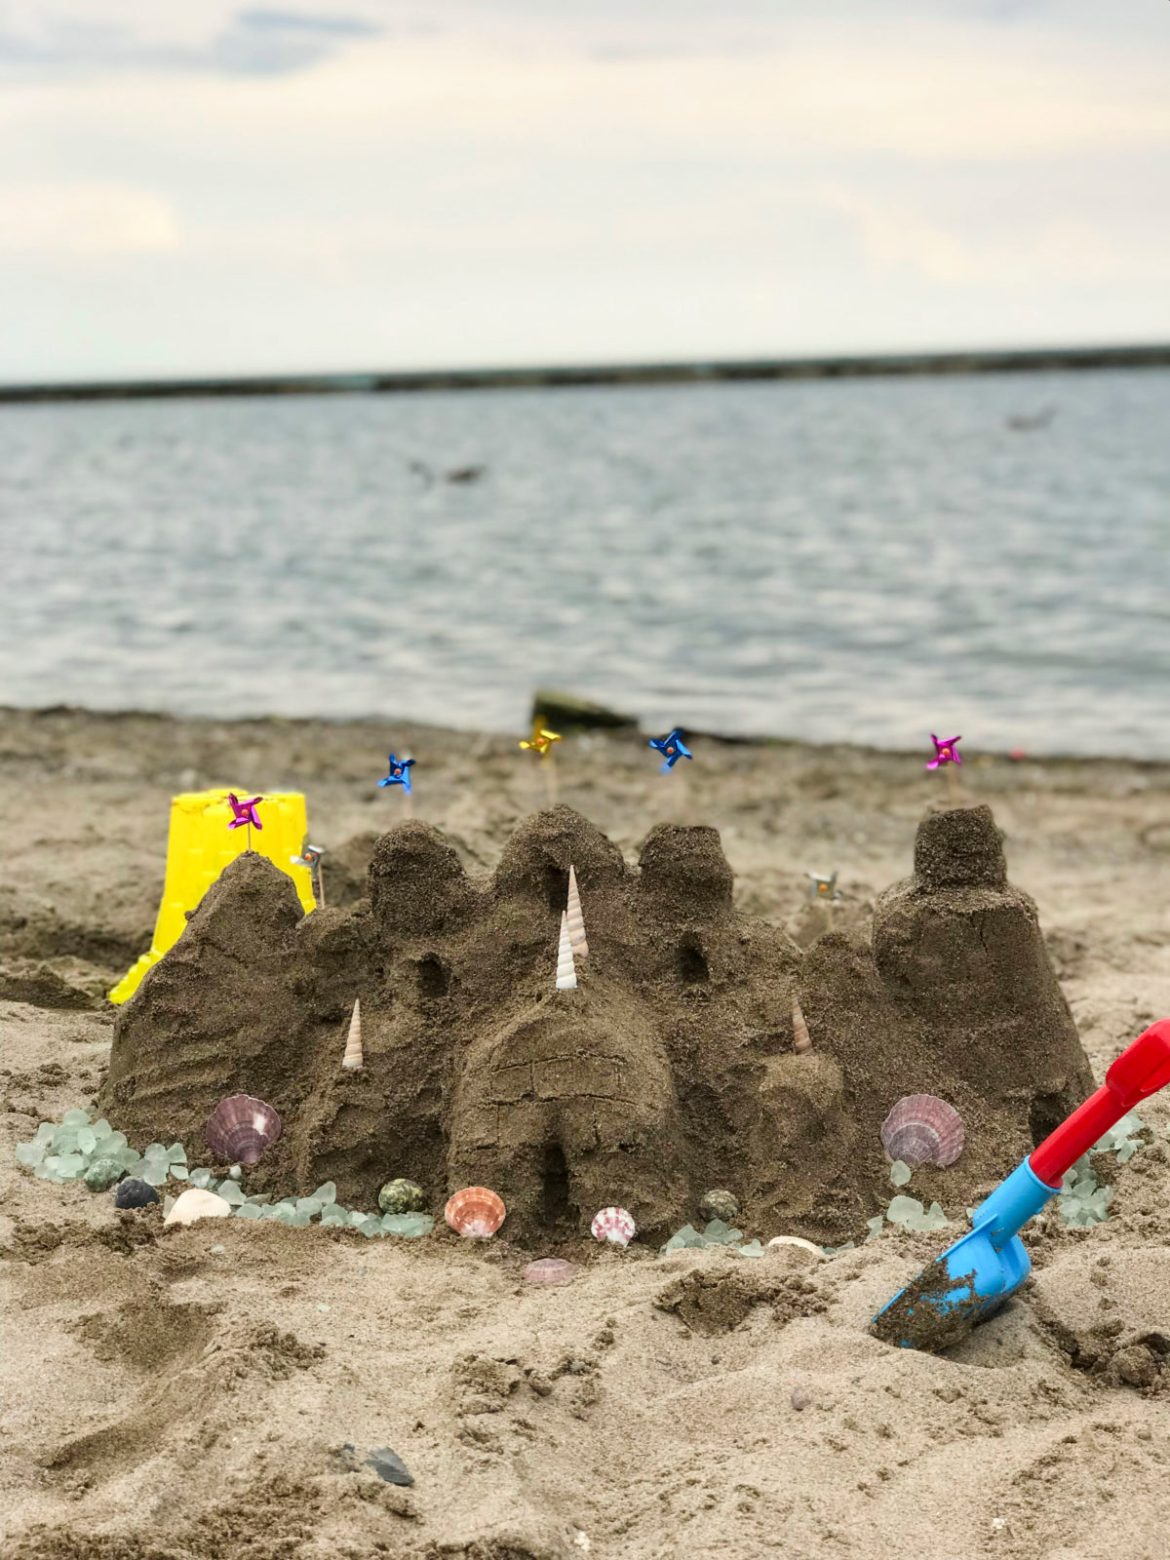 Have Crazy Amounts of Fun Building Sandcastles